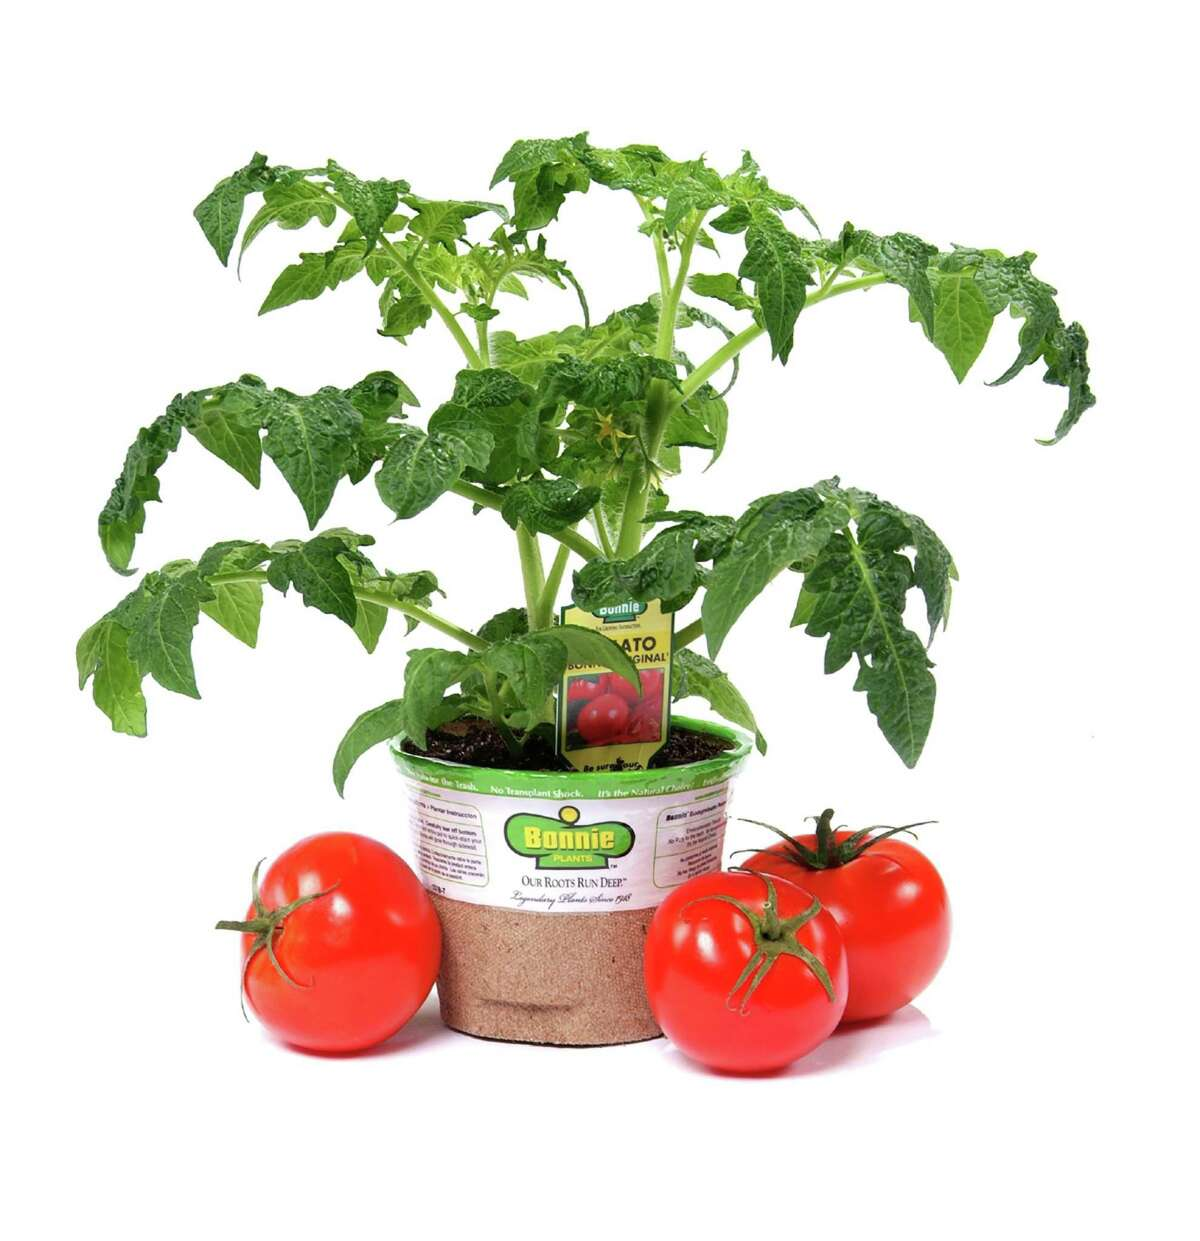 Bonnie Plants trucks vegetables and herbs in biodegradable pots to retail garden centers.